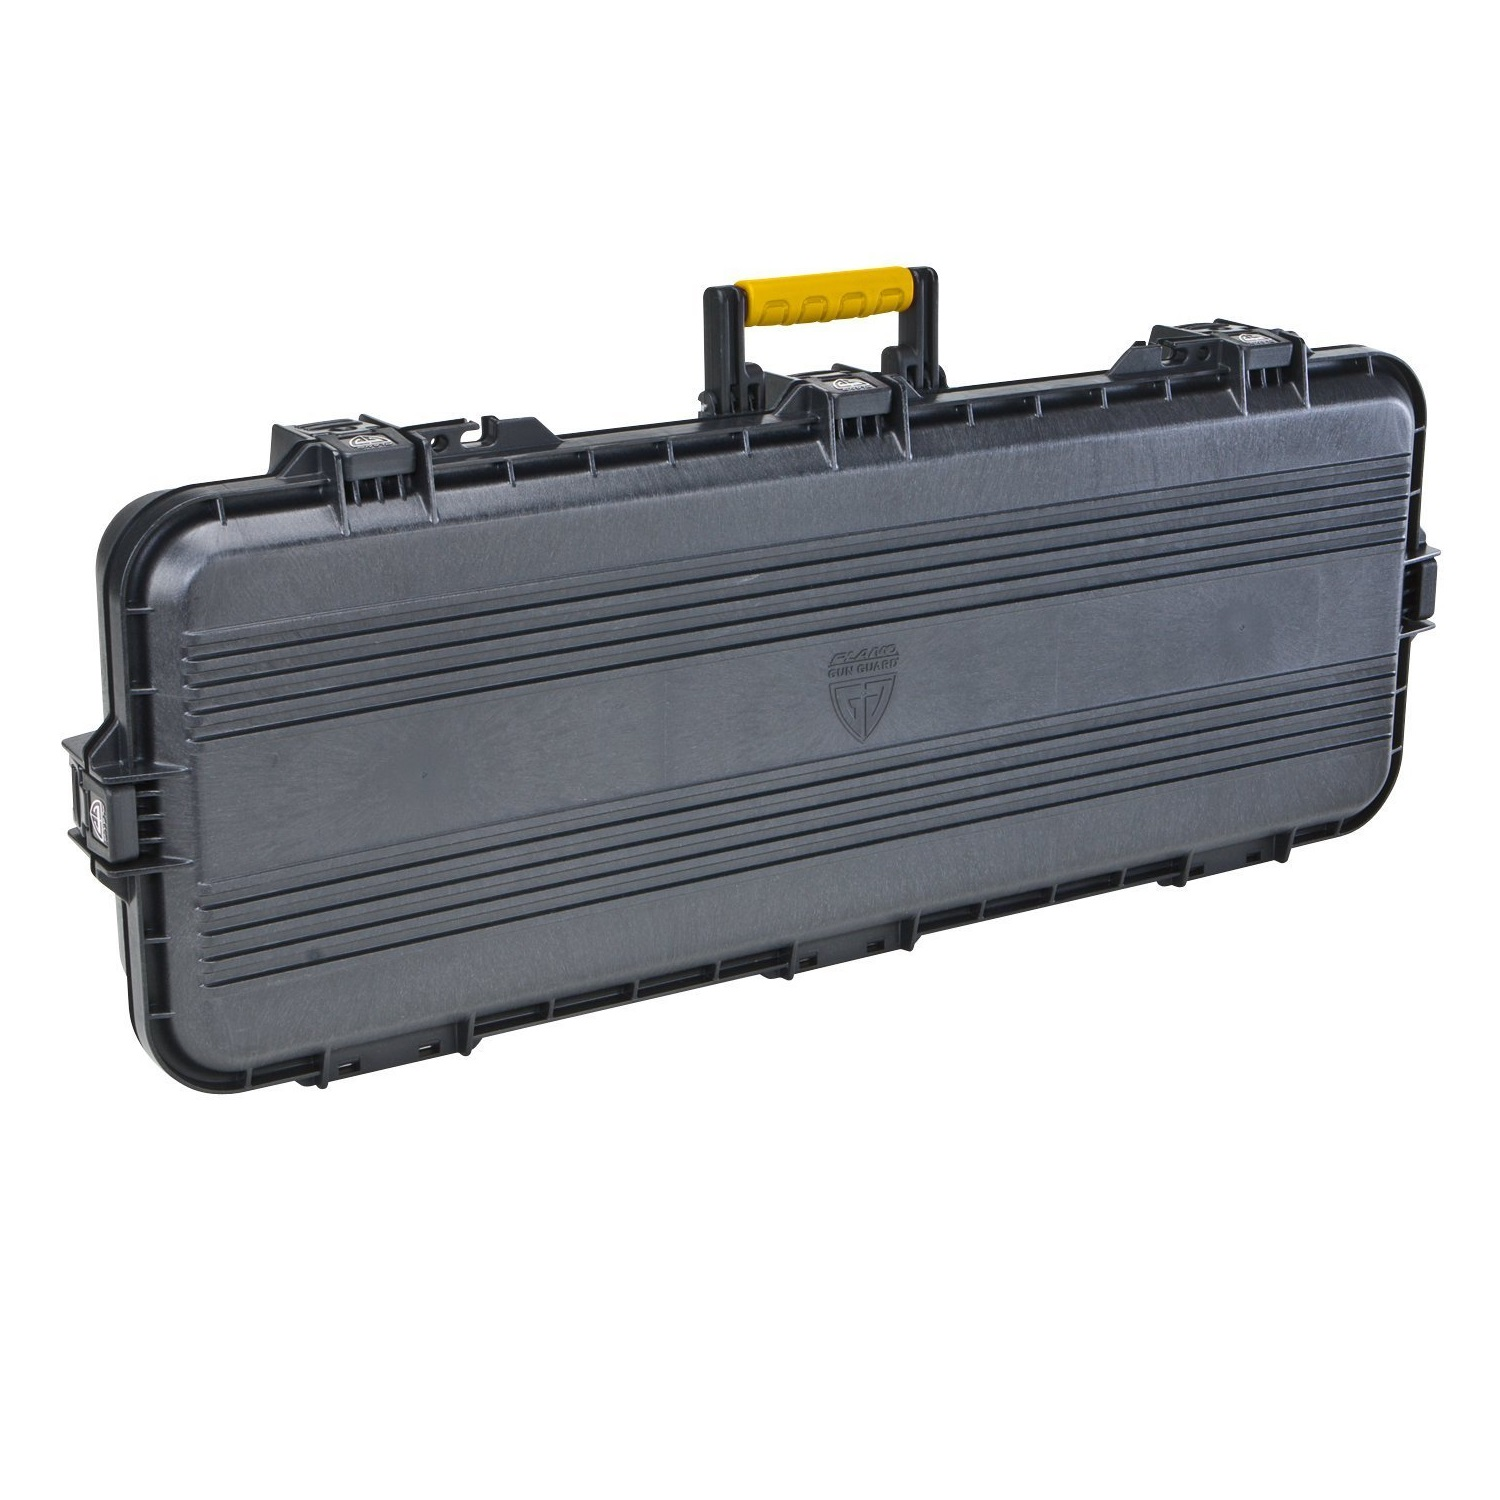 "Plano AW Tactical Case 36"" Black w/Yellow Latches and Handle"